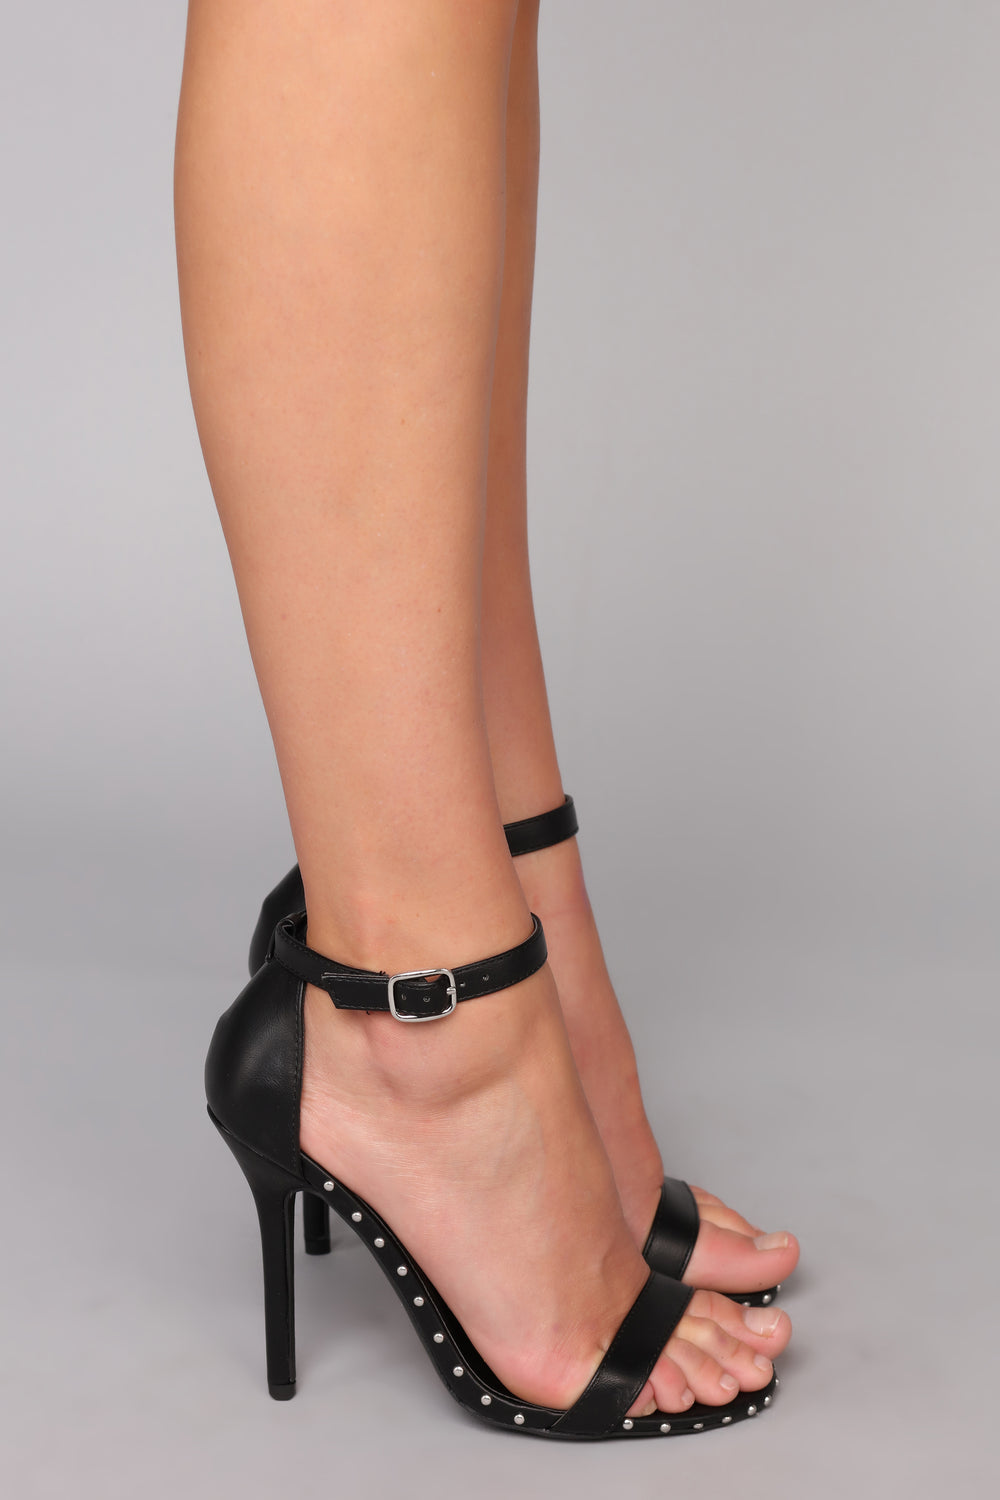 More Space Heel - Black